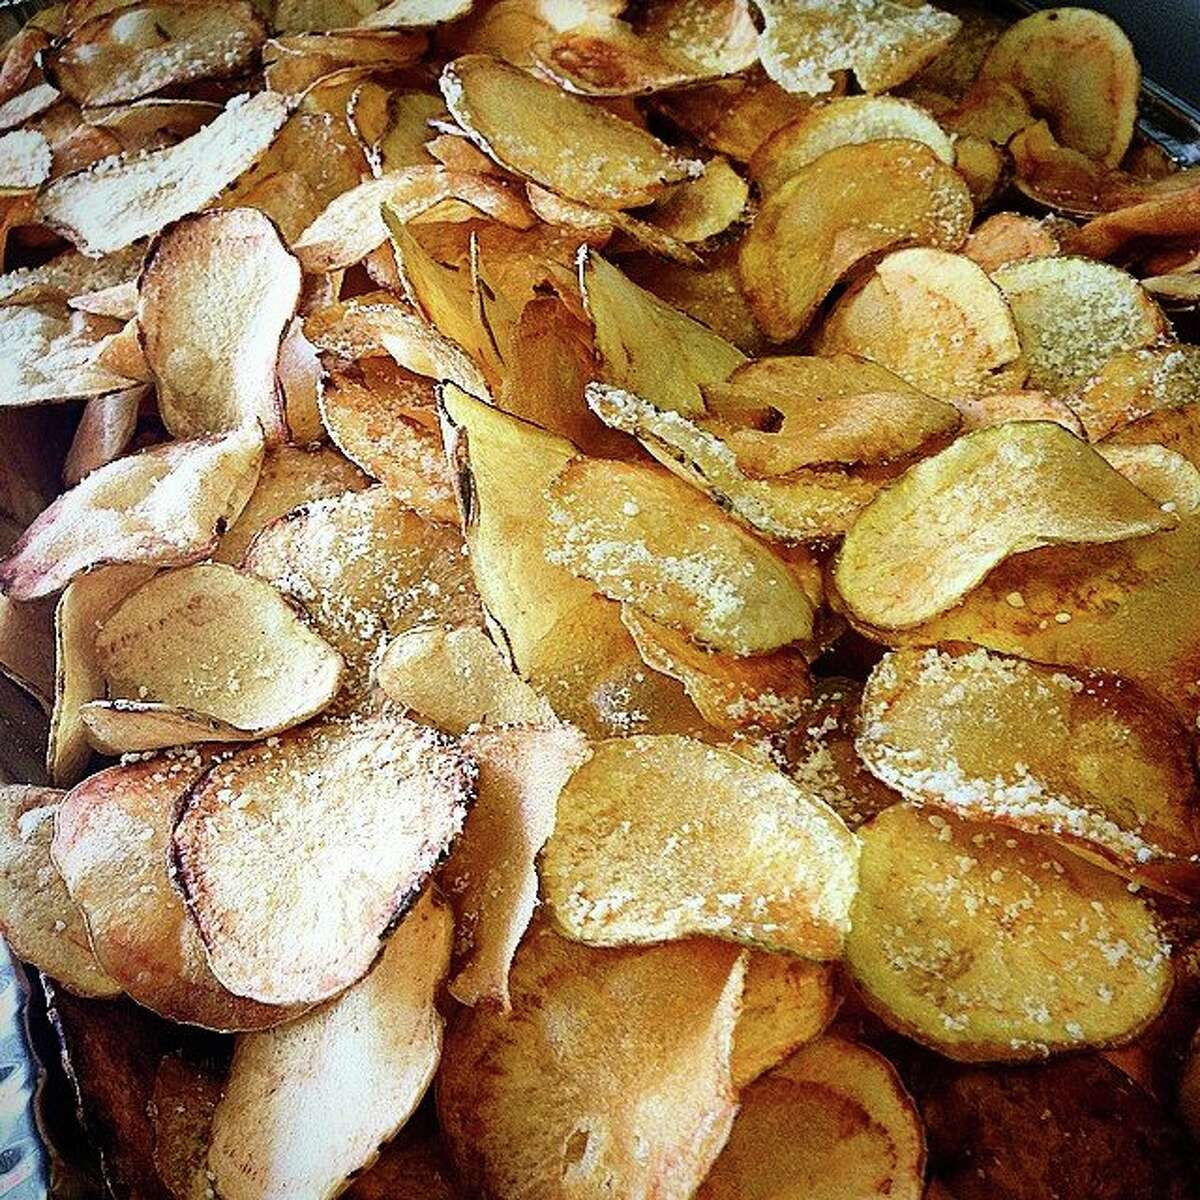 The percentage of Americans consuming chips at least once in two weeks has grown 6.1 percent during 2004-2014.